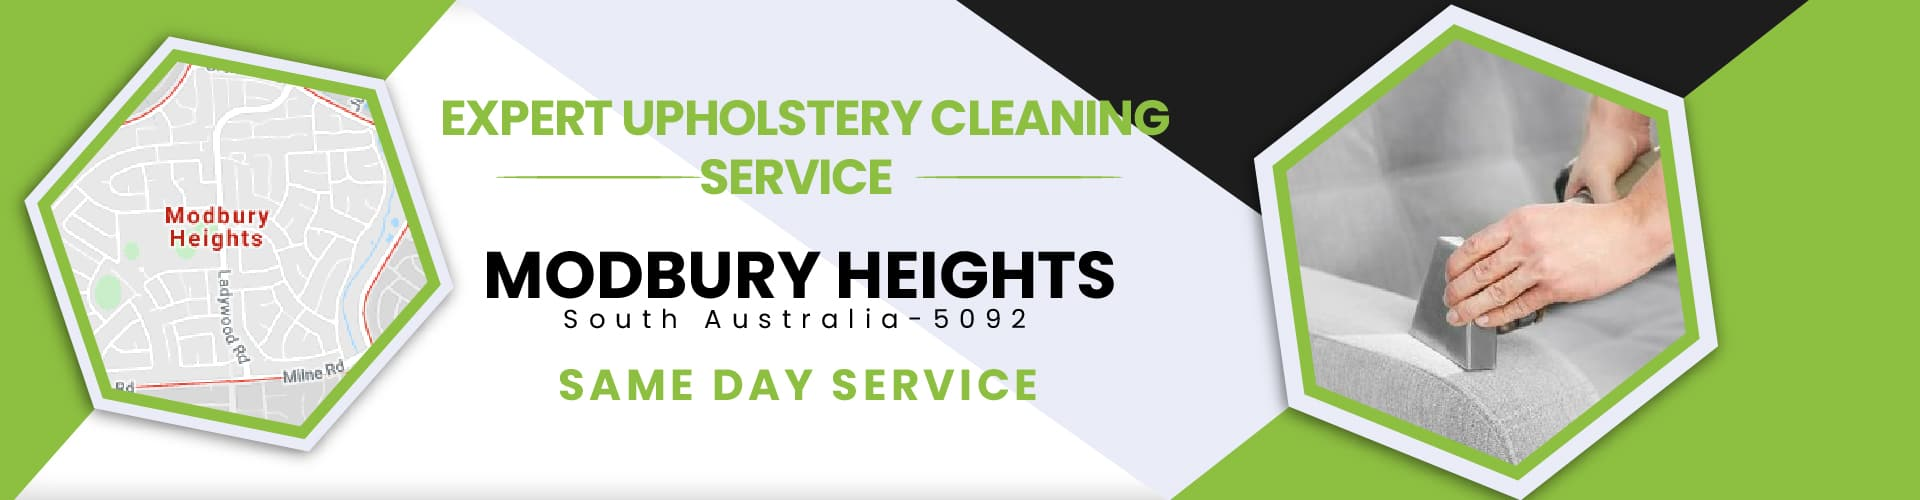 Upholstery Cleaning Modbury Heights